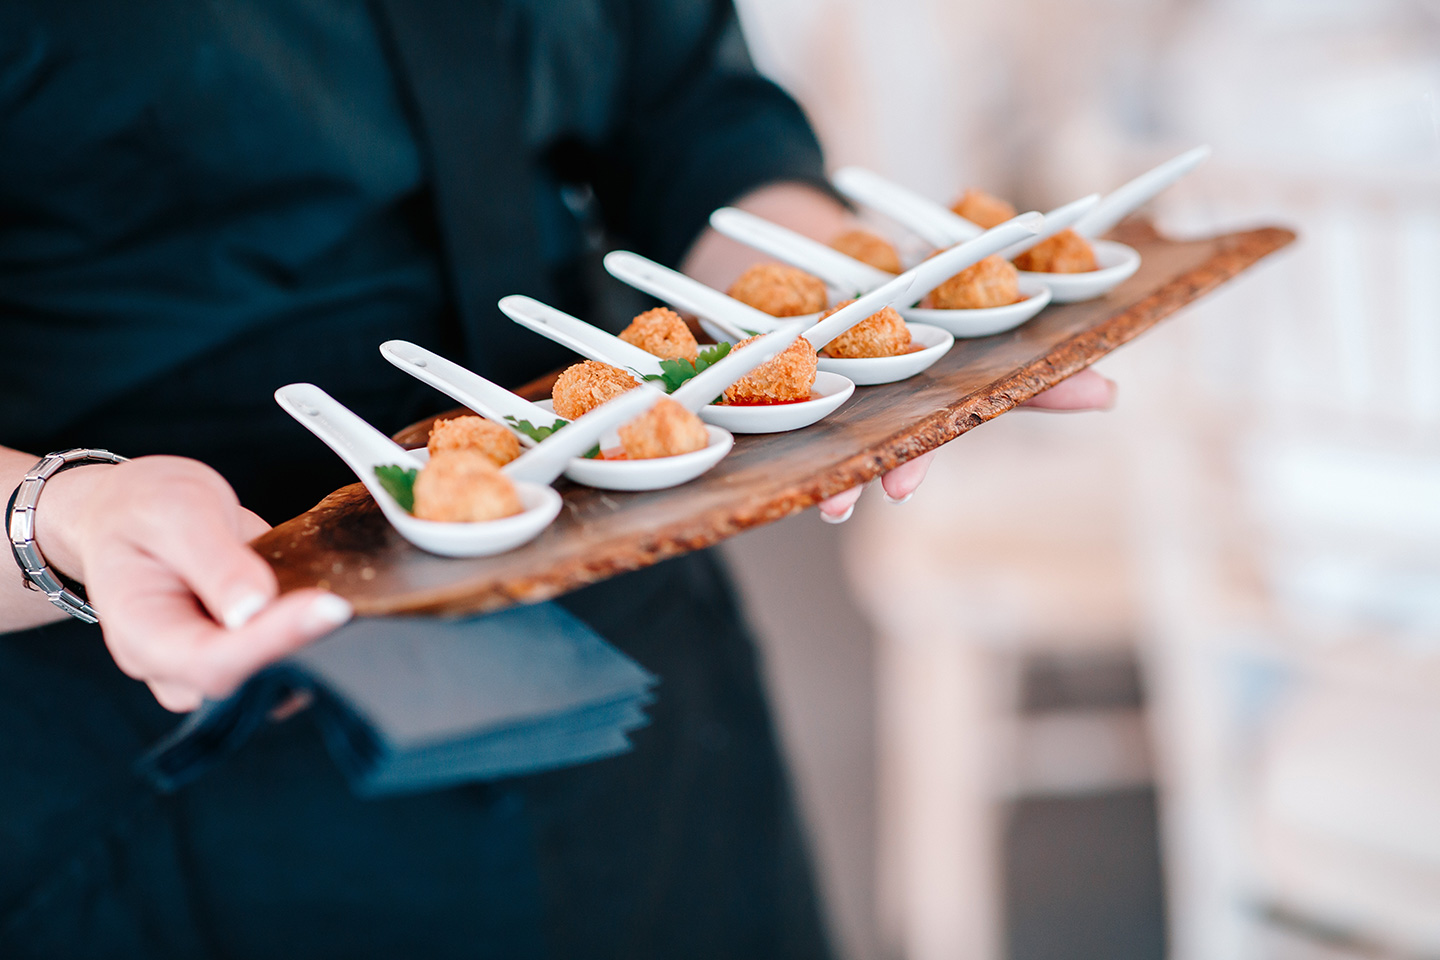 Serve a delicious selection of wedding canapes during your reception at Braxted Park wedding venue in Essex